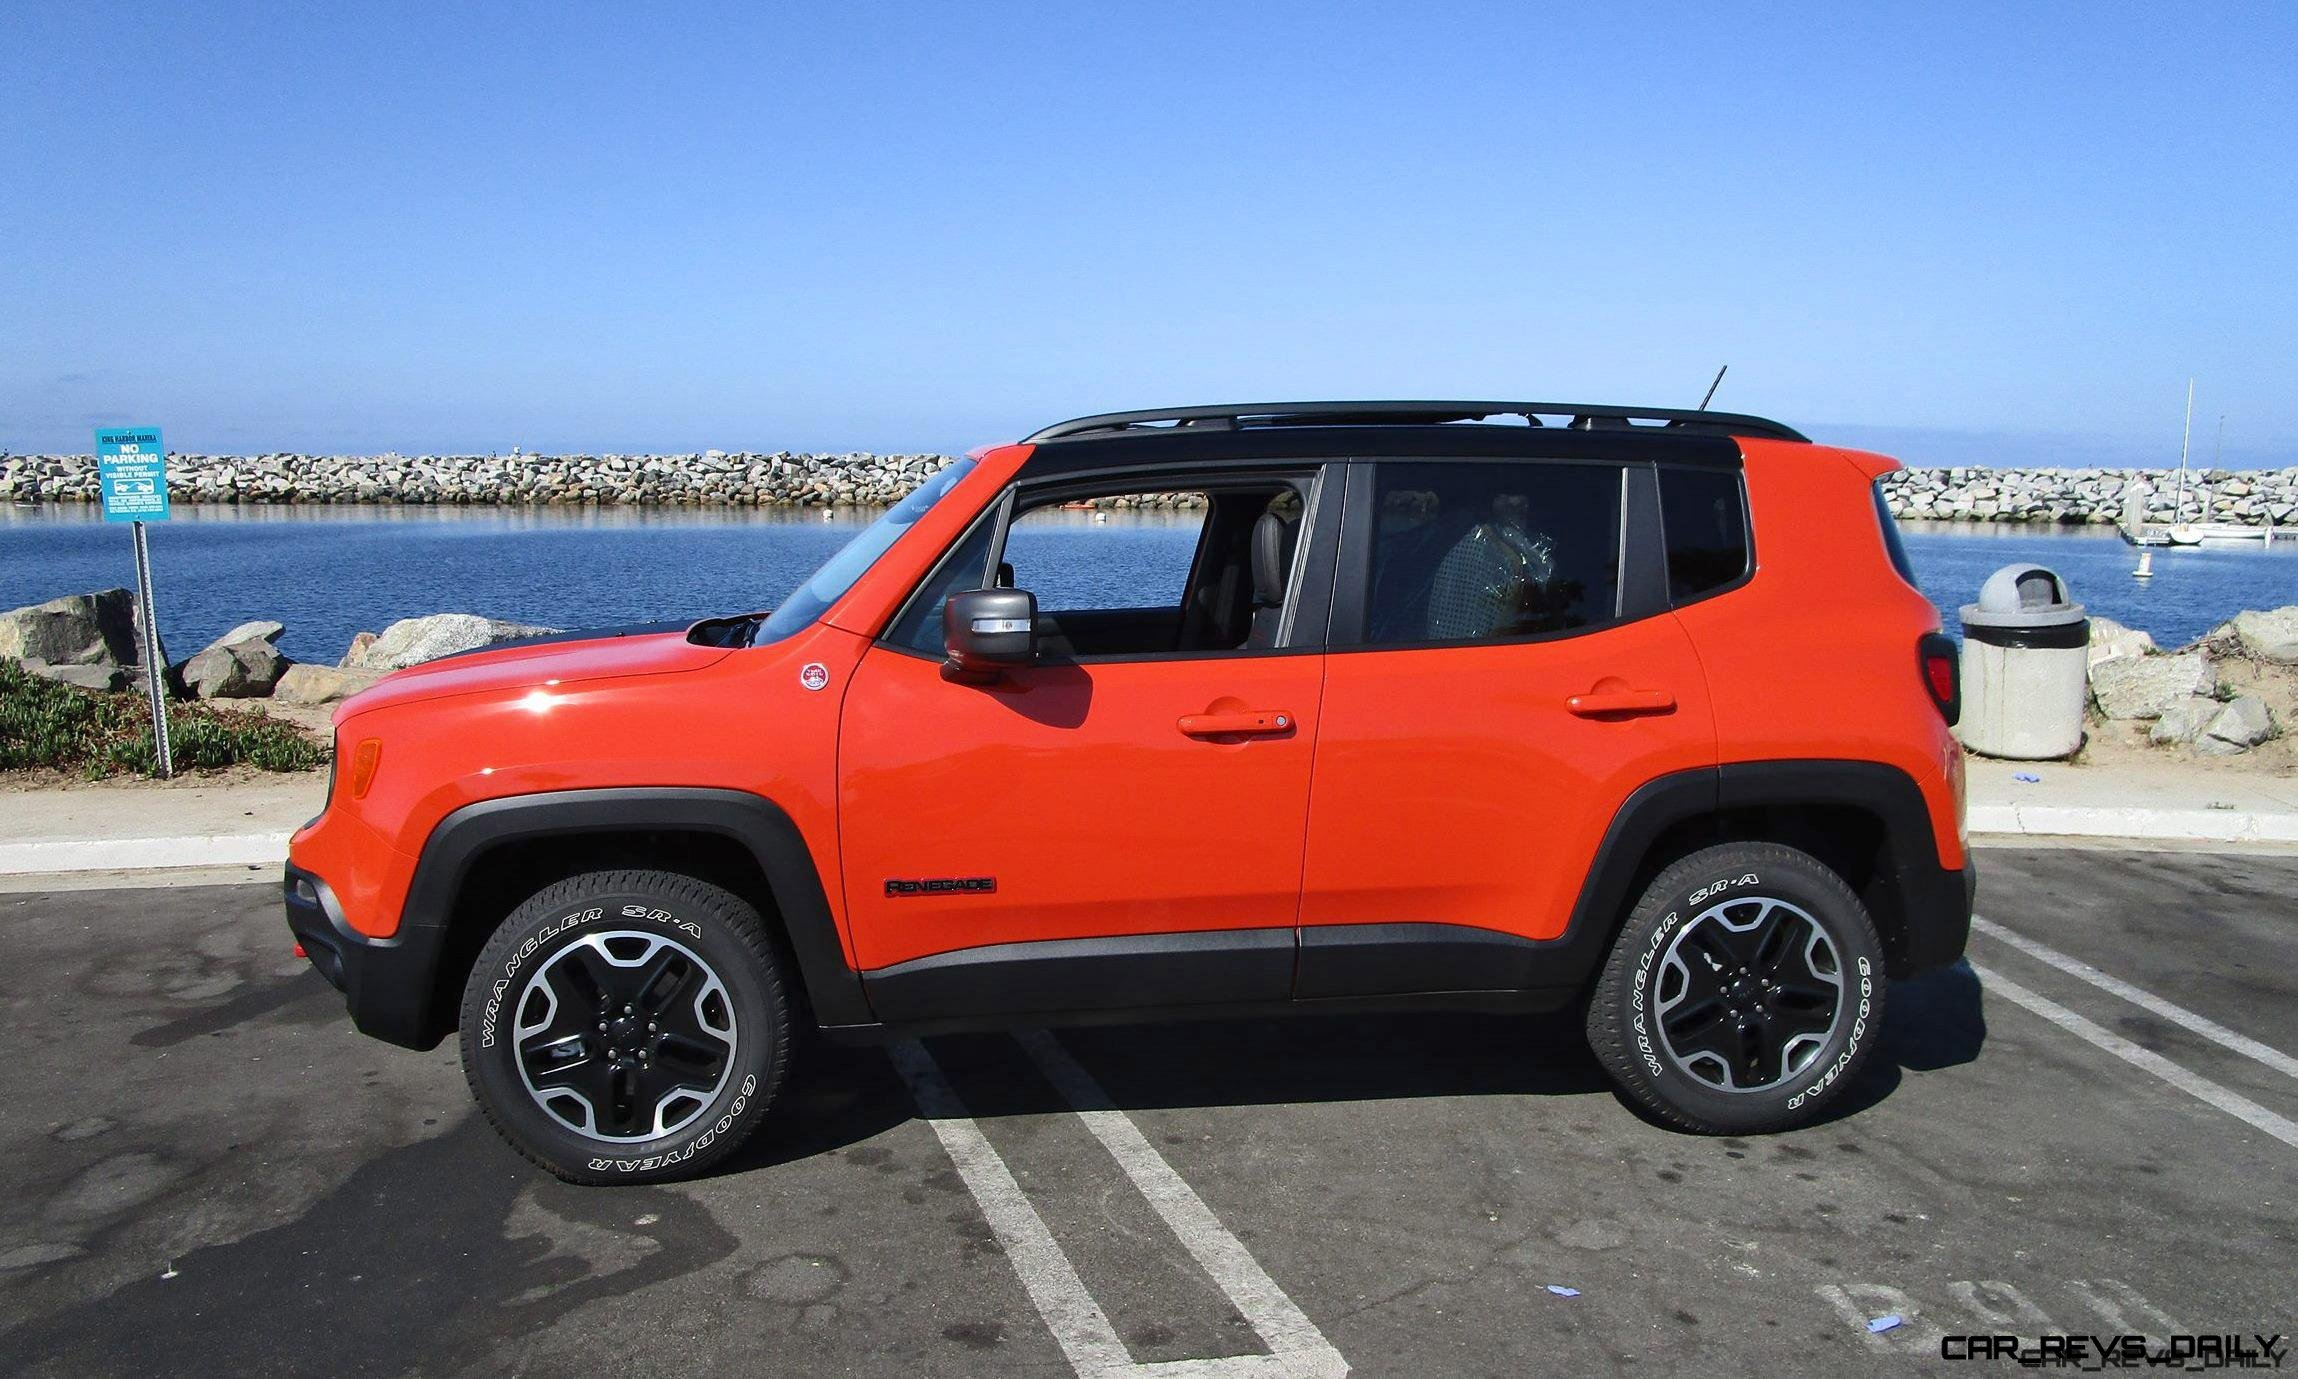 Jeep Renegade 4x4 >> 2016 Jeep RENEGADE Trailhawk 4x4 - Road Test Review - By Ben Lewis